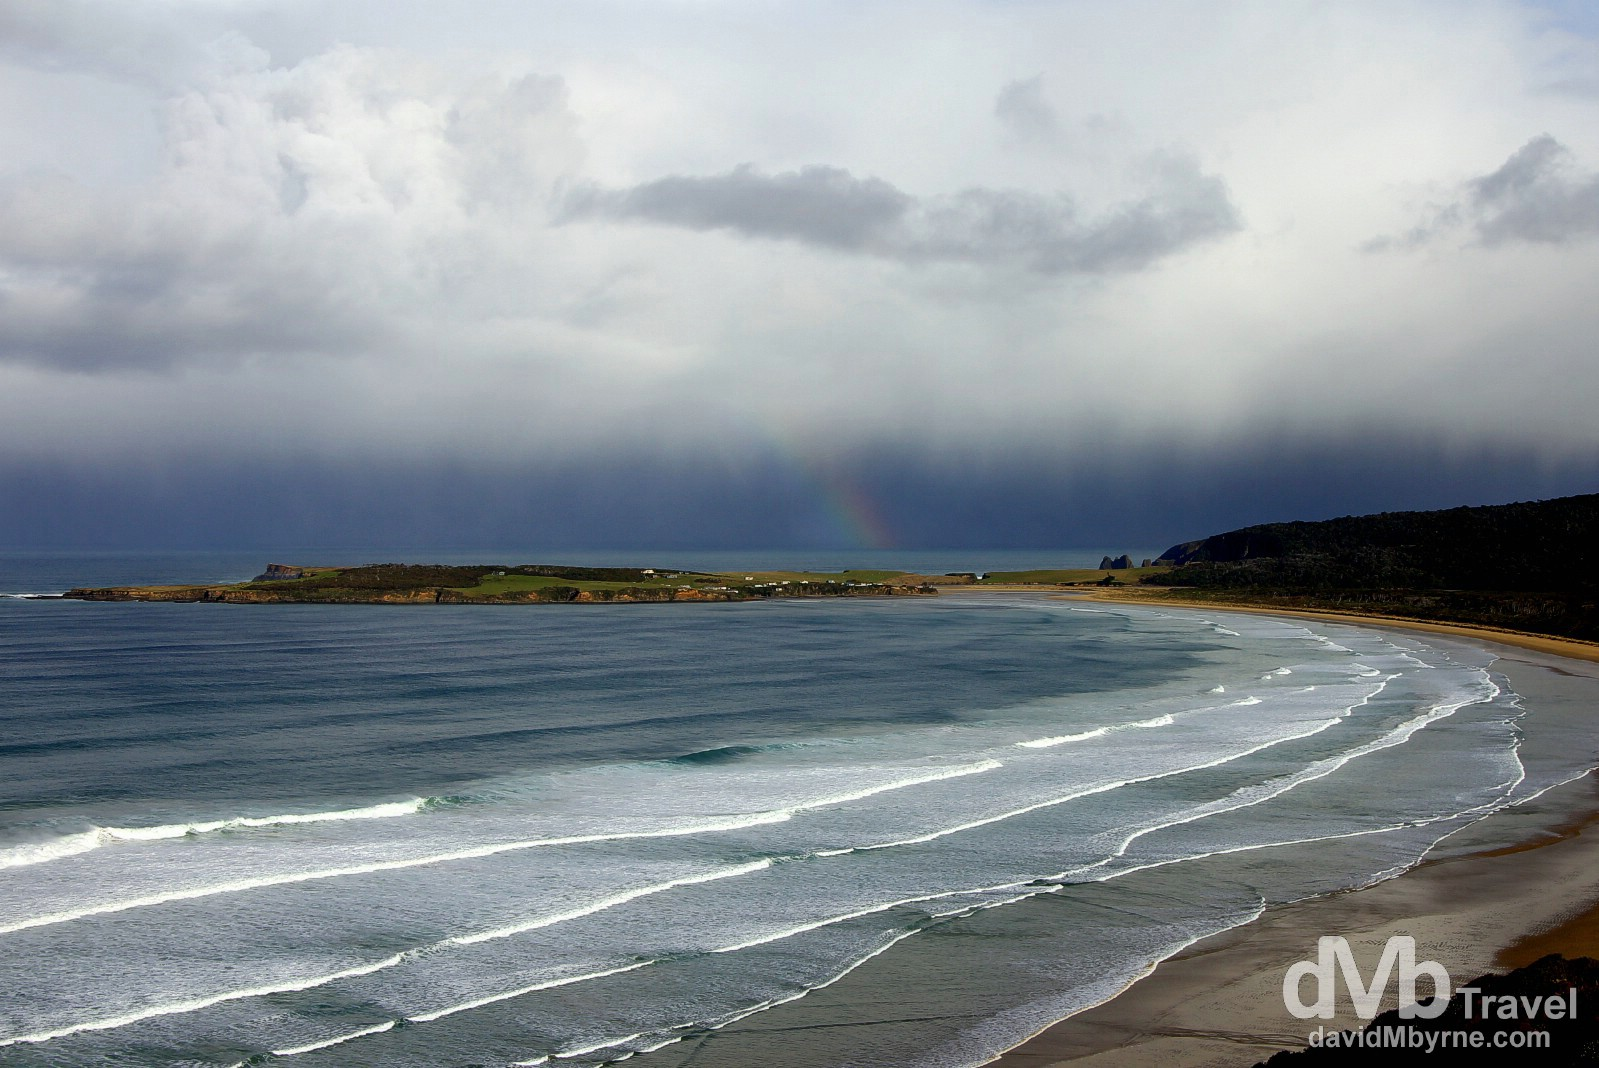 A faint rainbow & an approaching low front off shore of the Catlins Coast, South Island, New Zealand. May 28th 2012.